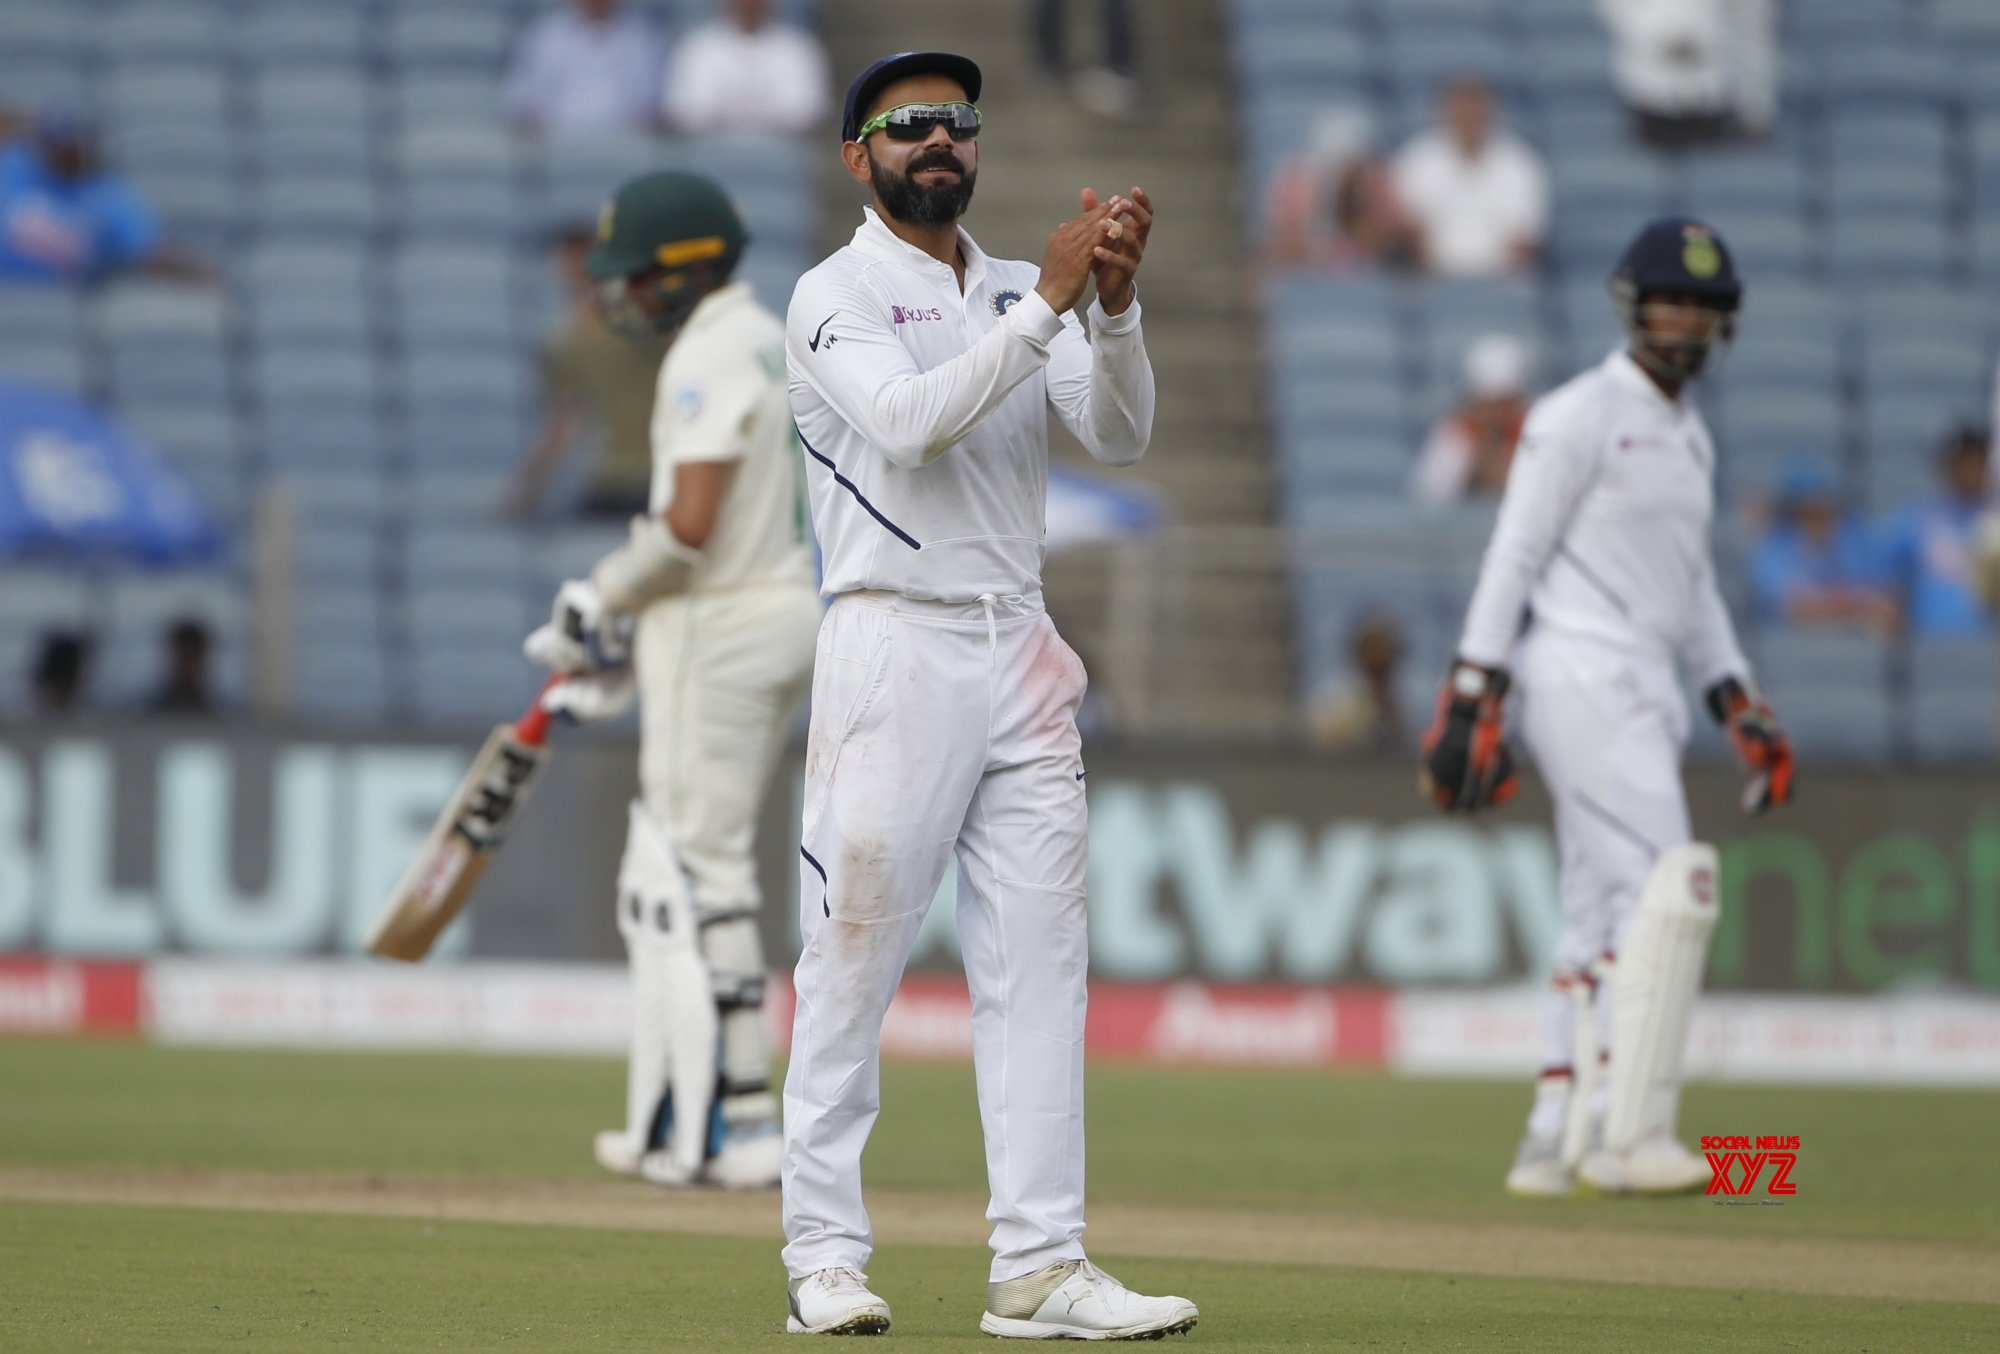 Pune: 2nd Test - India Vs South Africa - Day 3 (Batch - 17) #Gallery